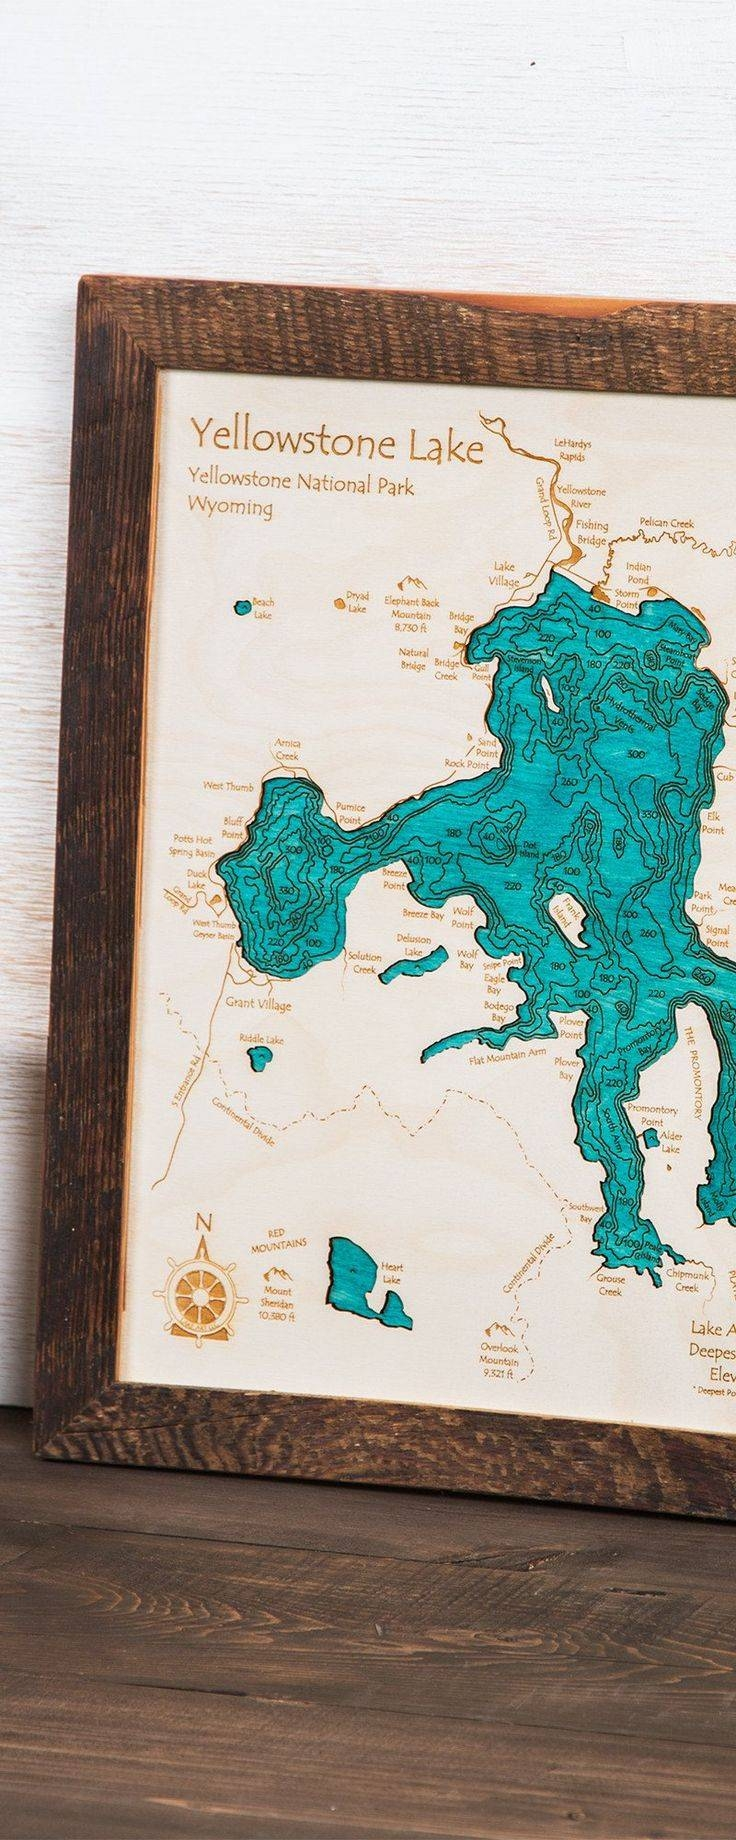 30 Best Map Art Images On Pinterest | Map Art, Baltic Birch And Intended For Recent Lake Map Wall Art (Gallery 17 of 20)